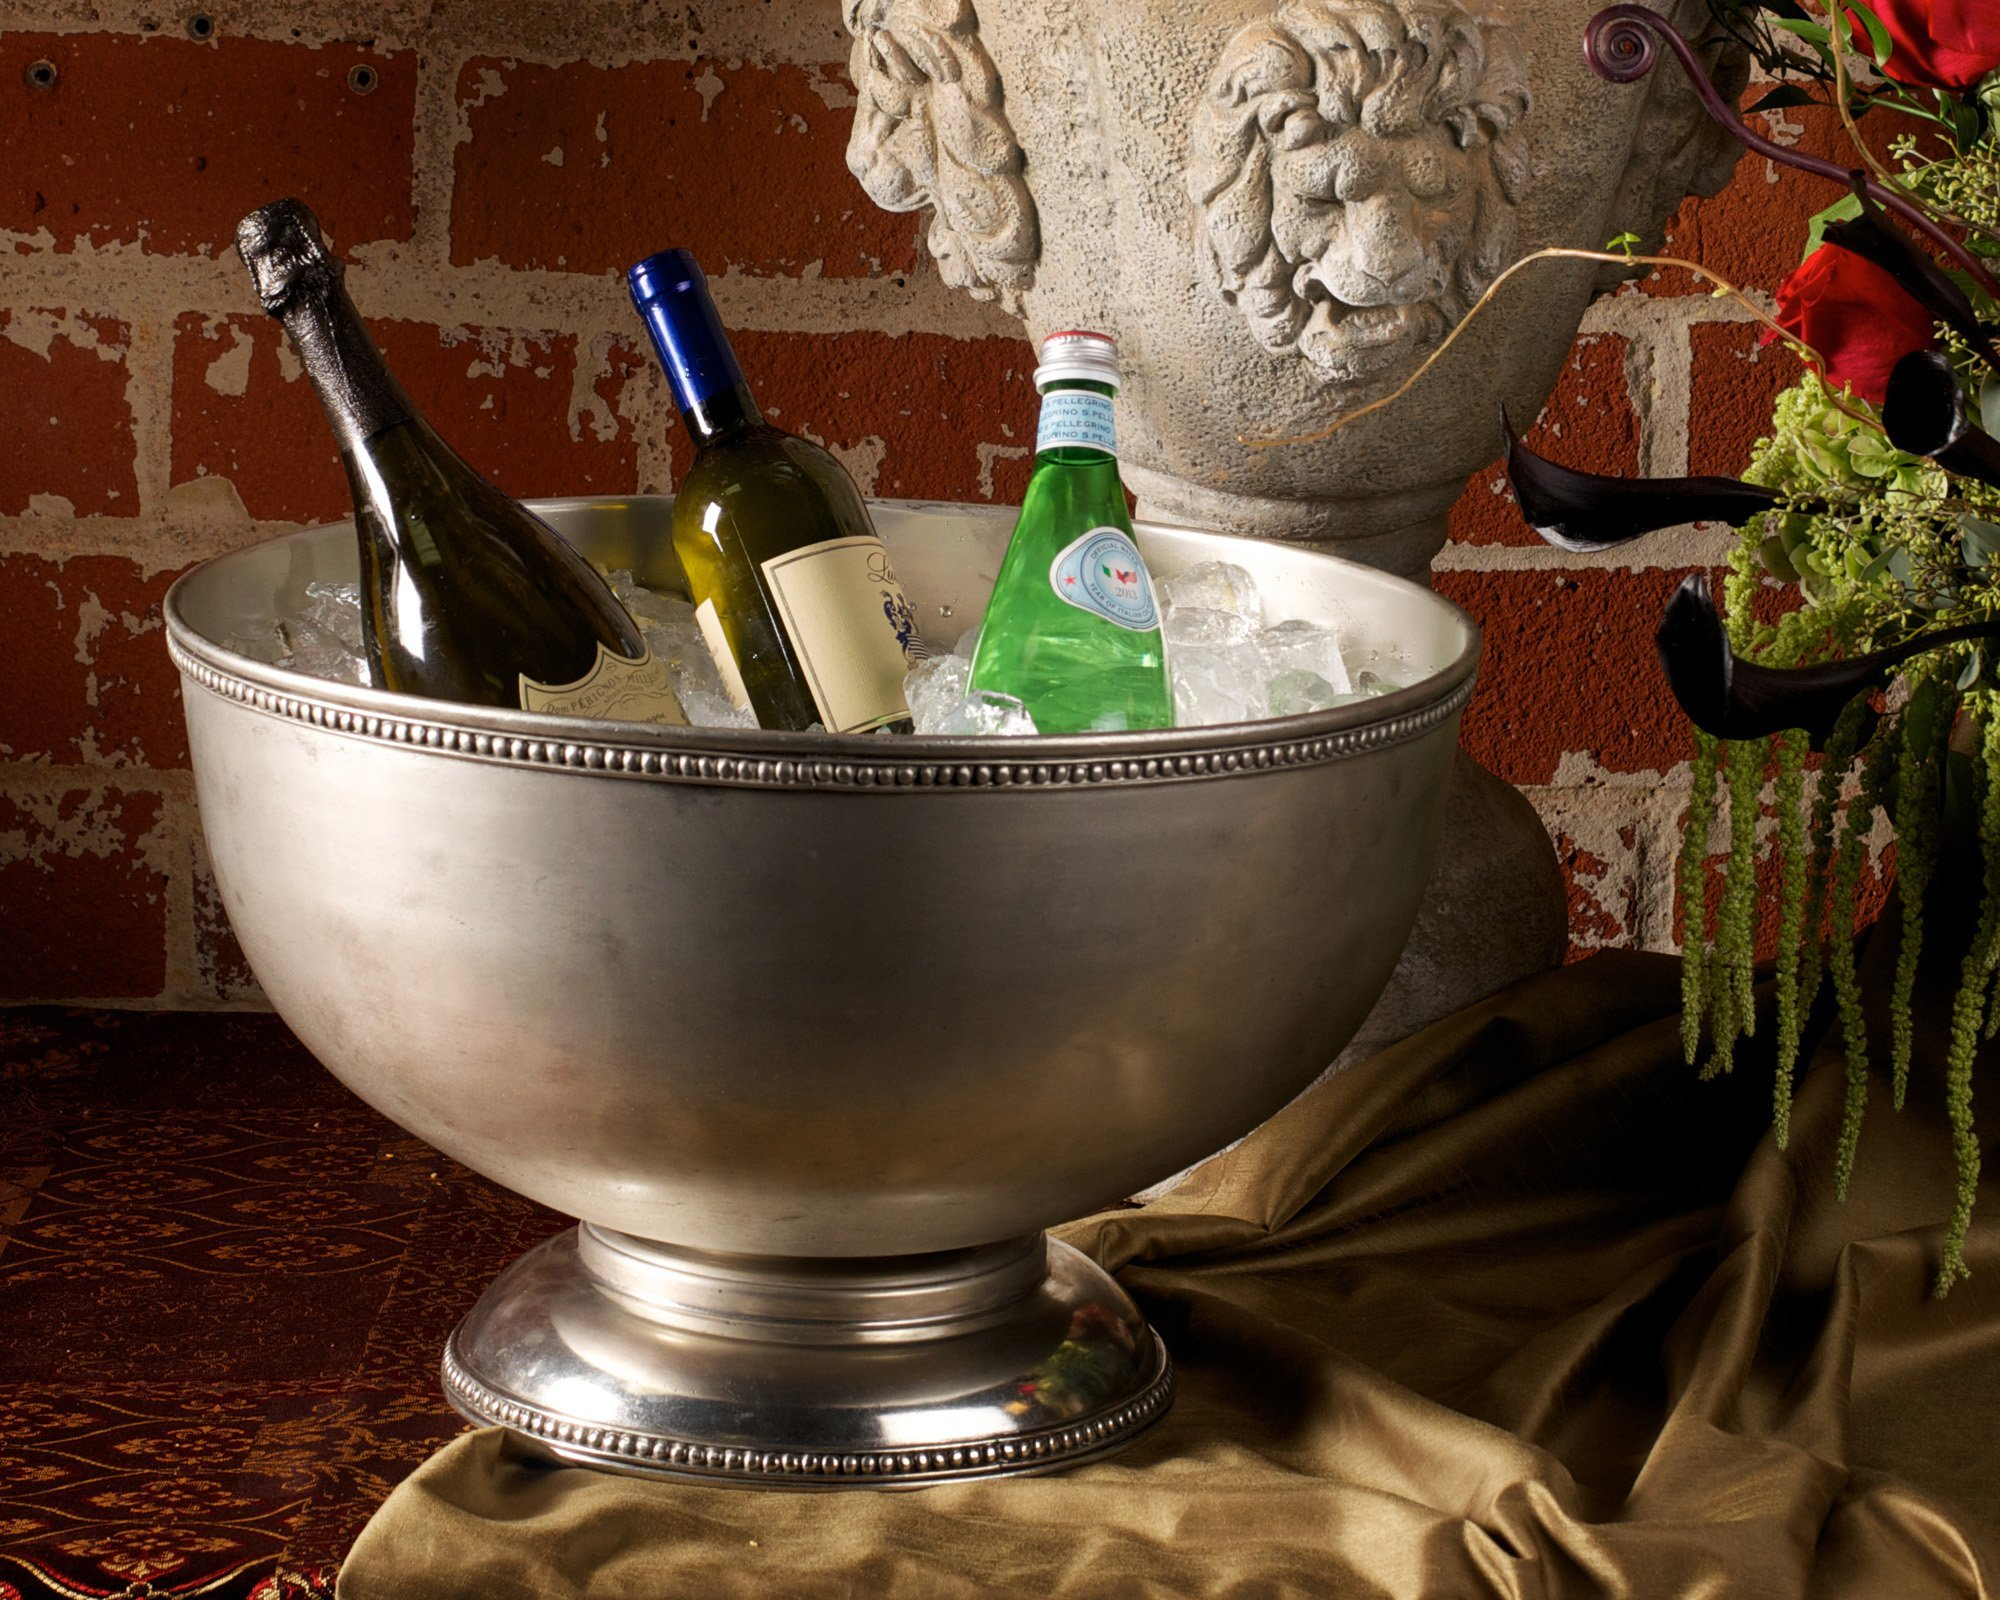 Vagabond House Pewter Medici Bead Ice Tub/Punch Bowl 18.5'' Wide x 11'' Tall by Vagabond House (Image #2)